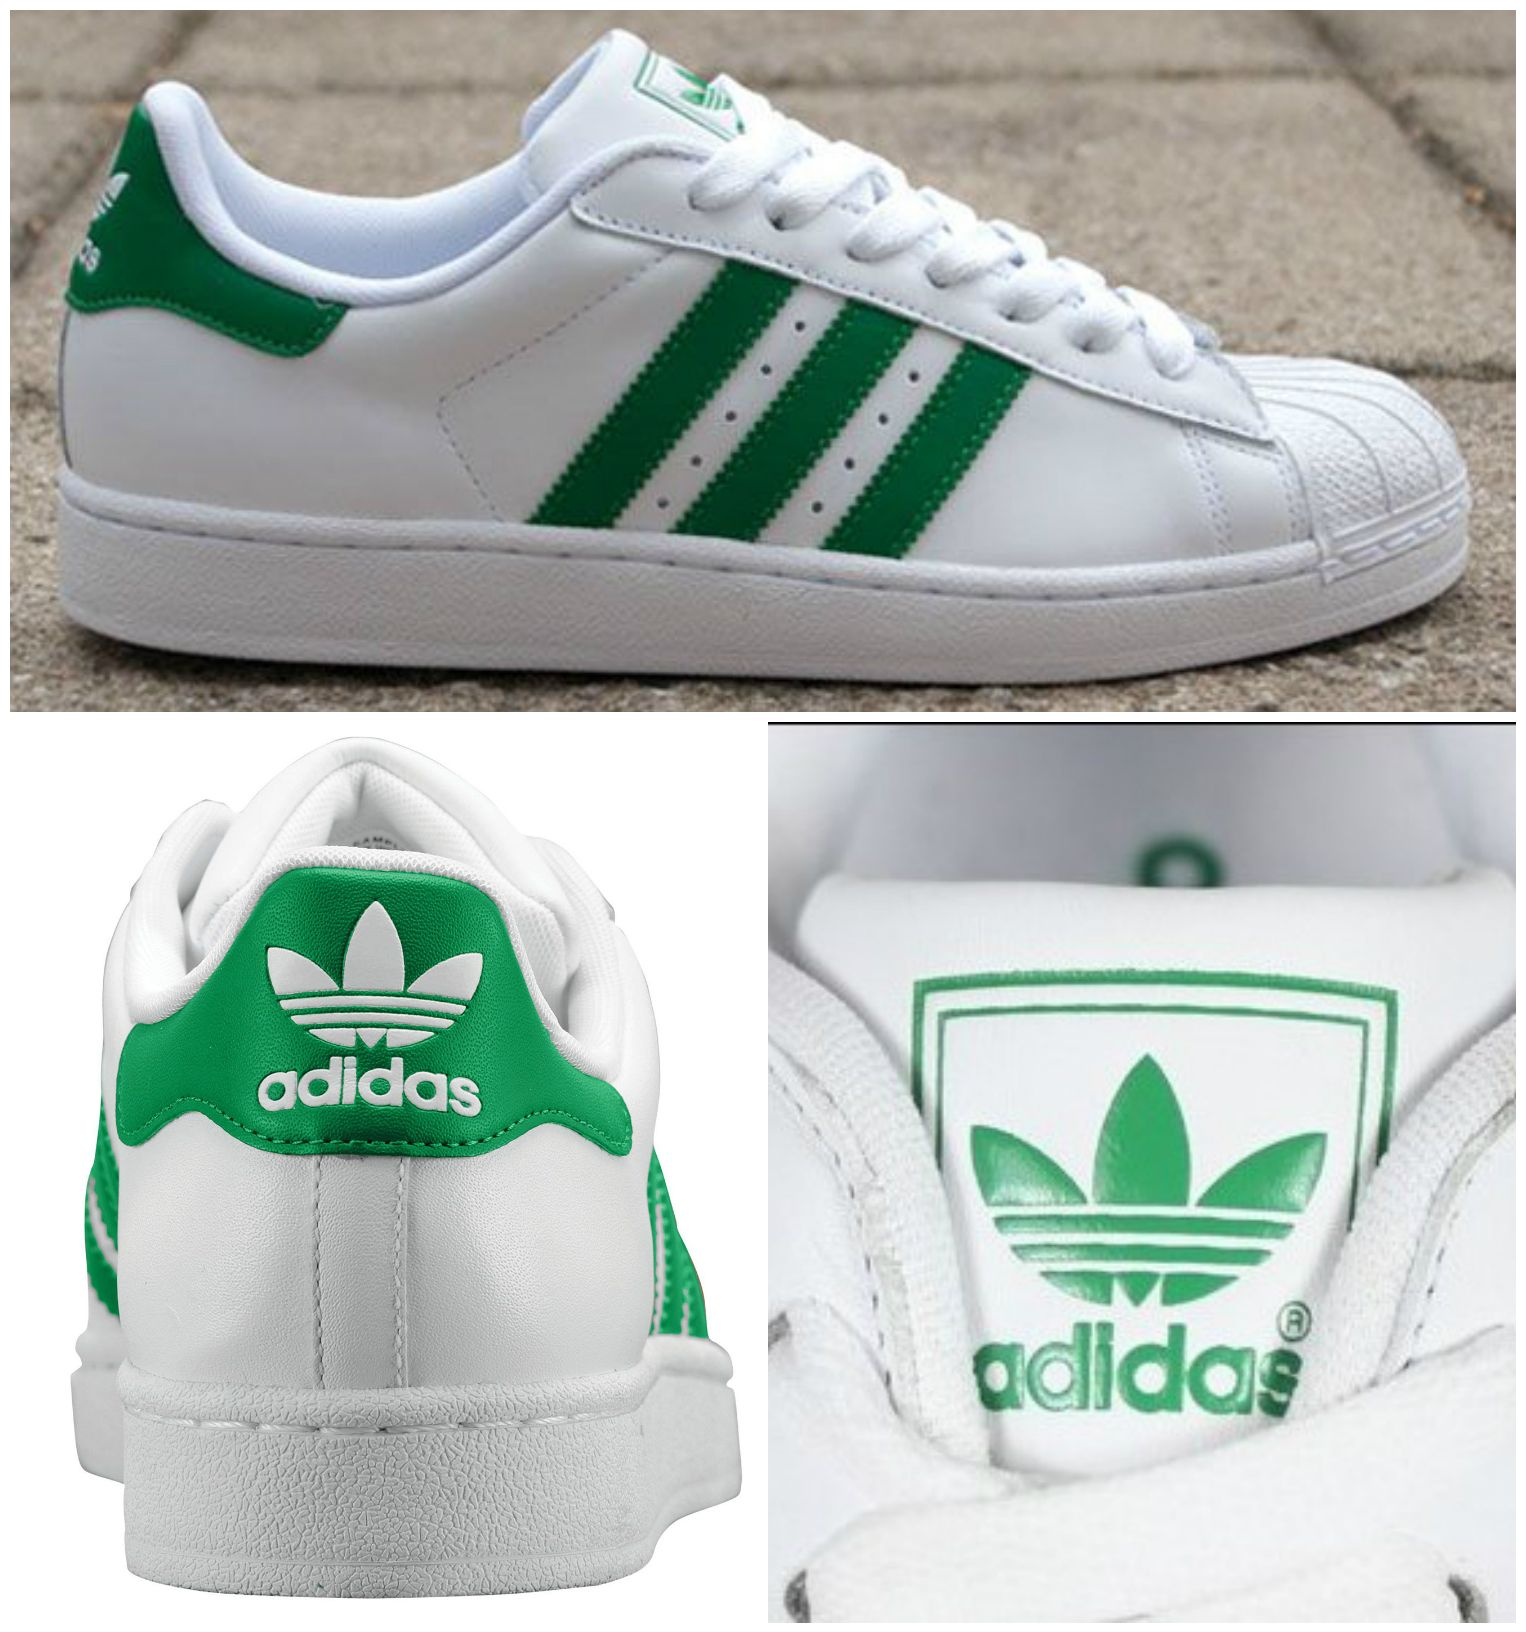 adidas superstar universitets svart 12 x